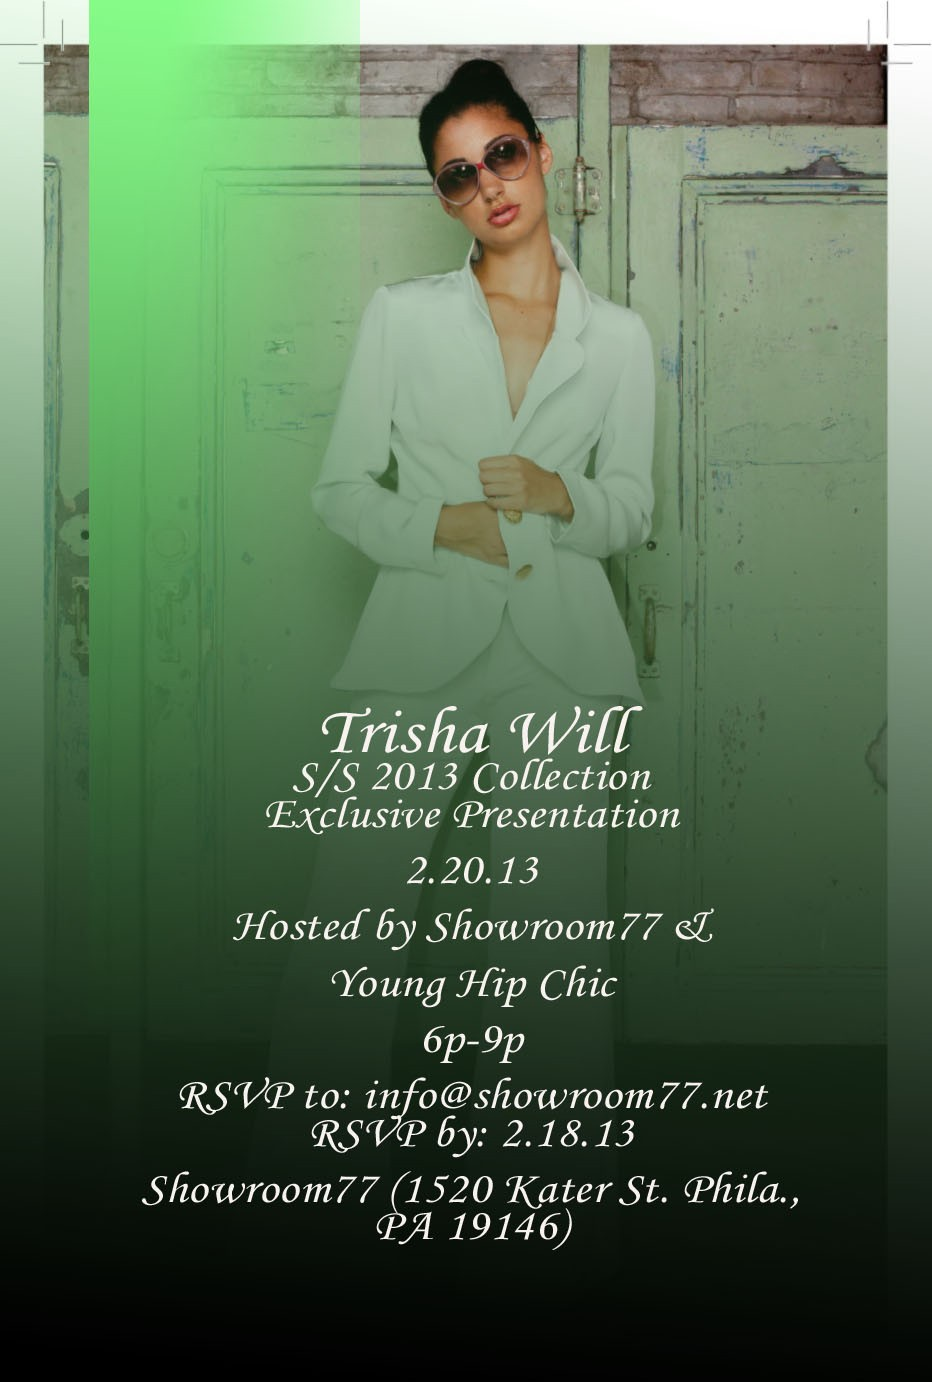 TRISHA WILL 2013 Collection invite